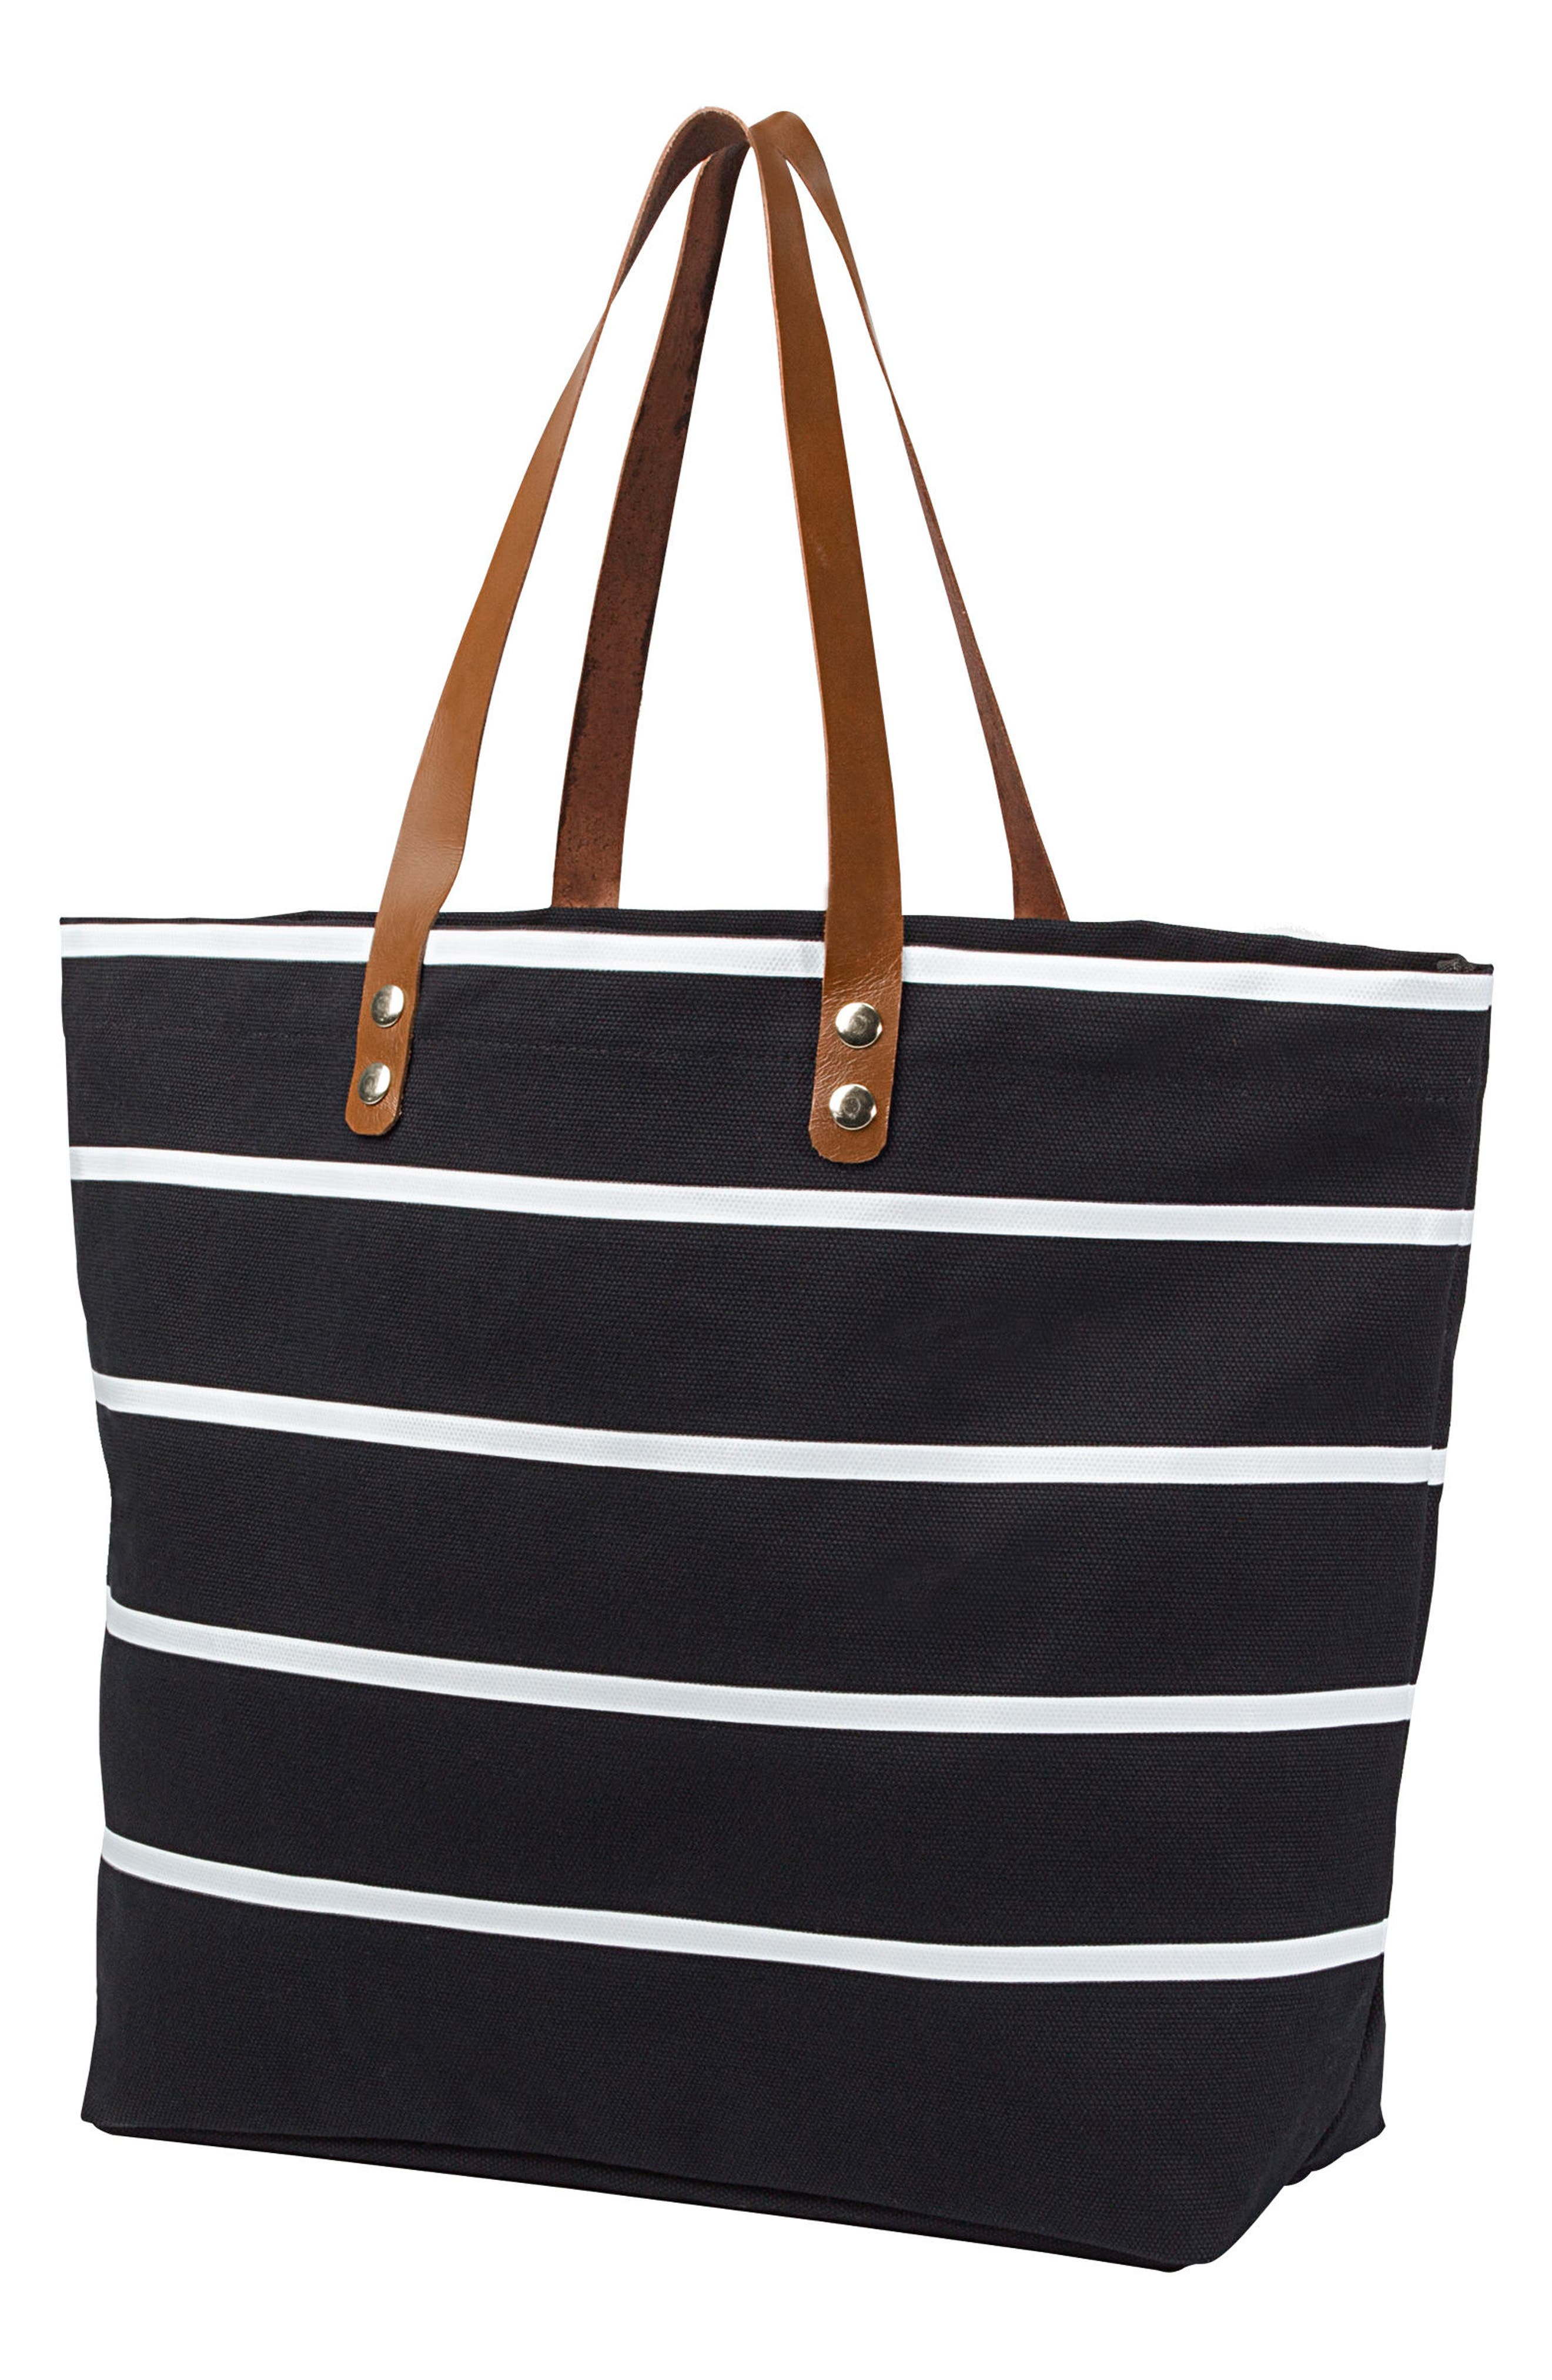 CATHY'S CONCEPTS Monogram Large Canvas Tote, Main, color, BLACK